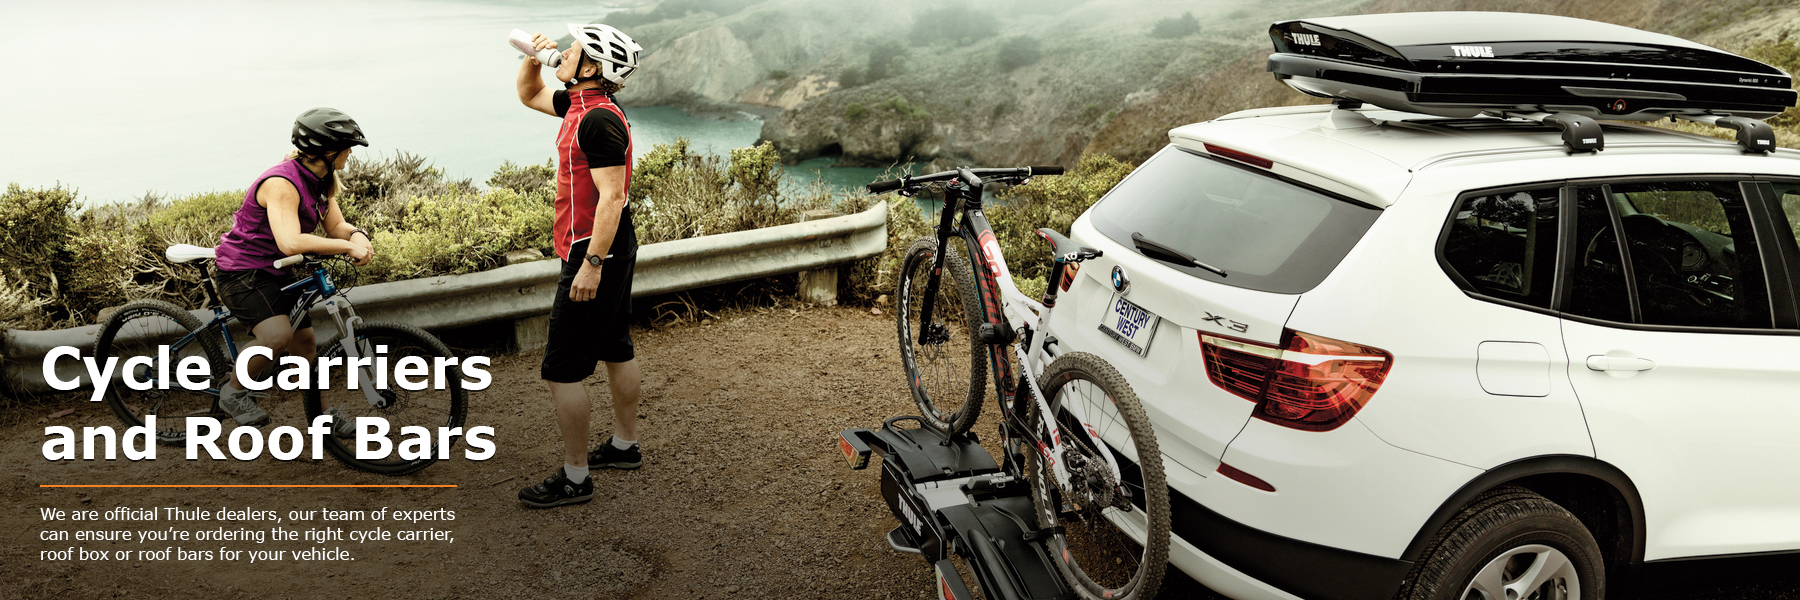 Thule Cycle Carriers and Thule Roof Bars from PF Jones